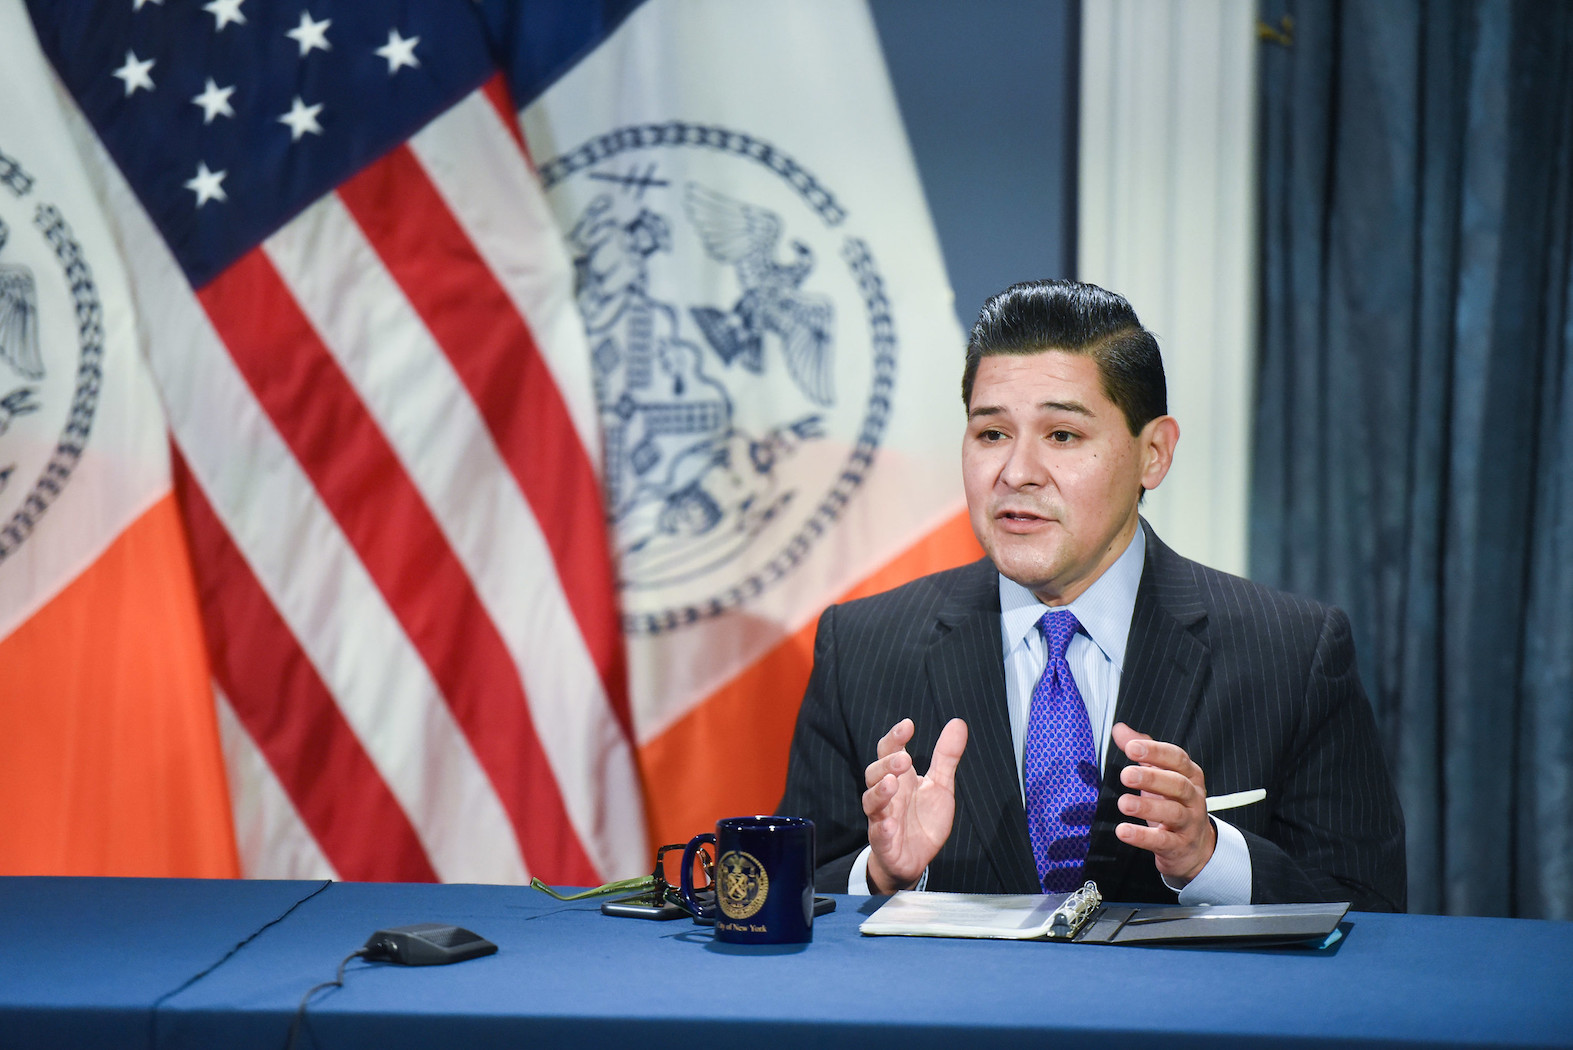 New York City schools Chancellor Richard Carranza at a media availability on December 21.